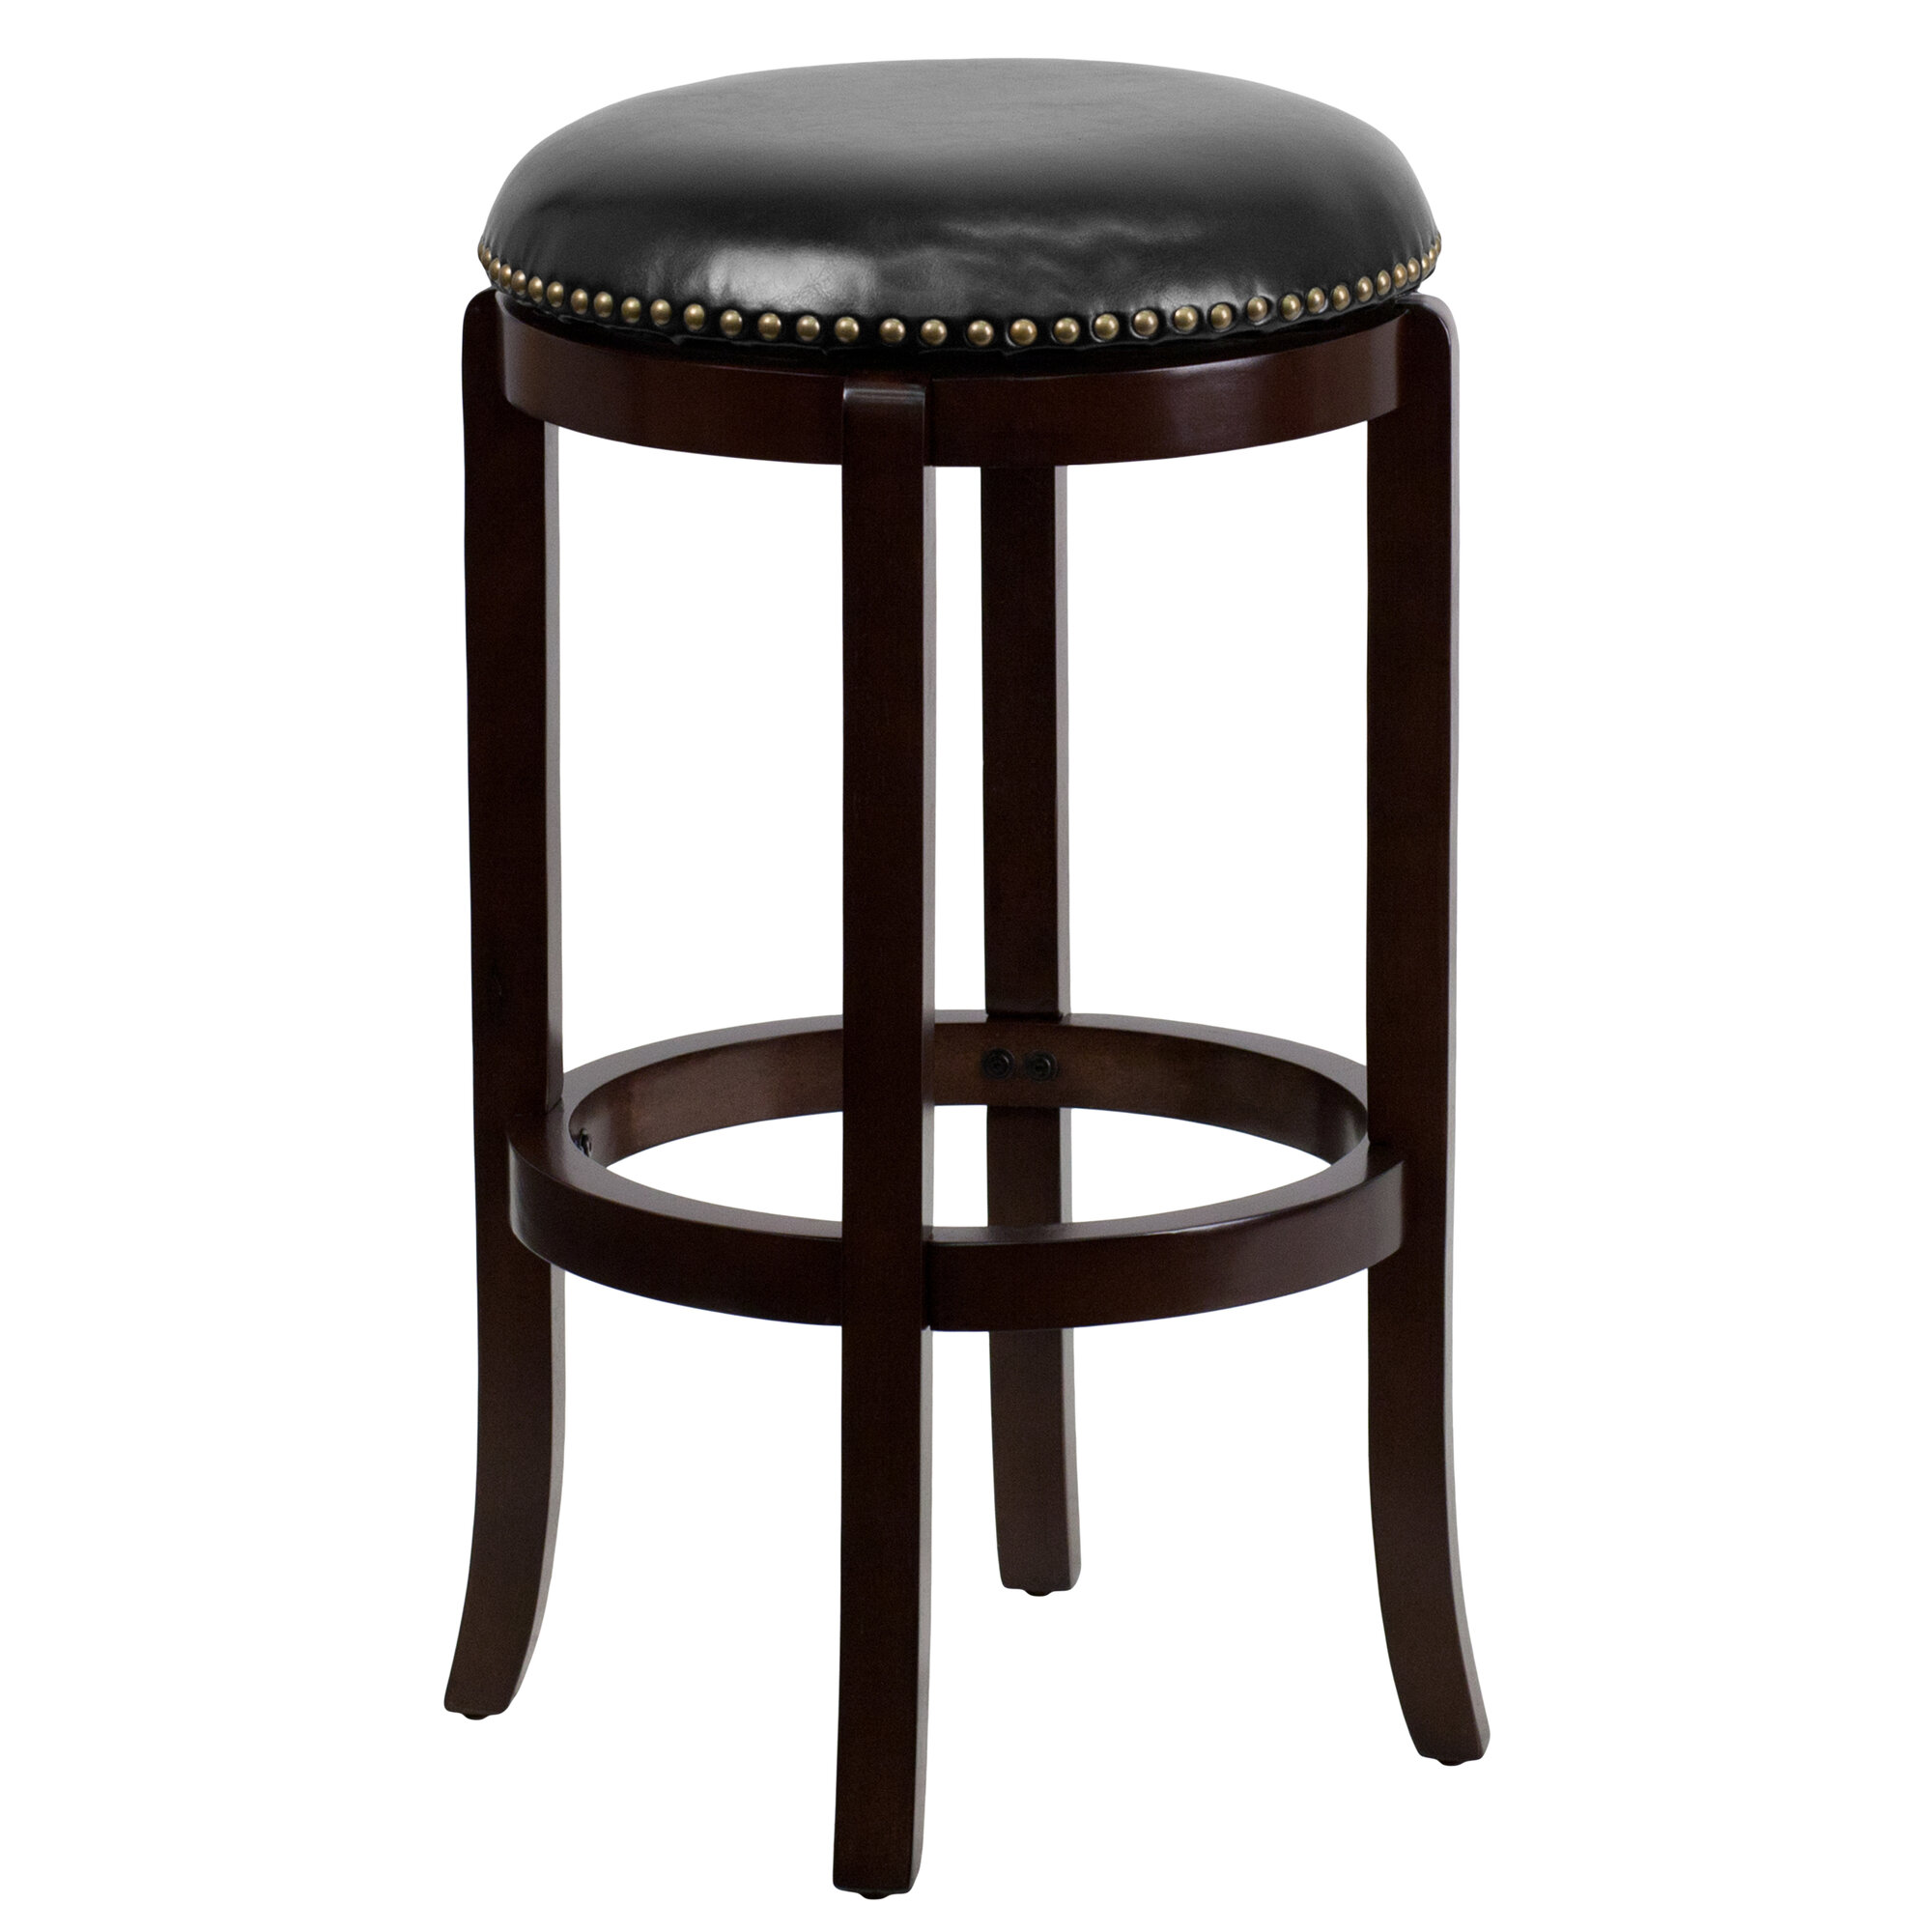 Flash Furniture 29 Backless Wood Bar Stool with Leather  : 1 from www.ebay.com size 2000 x 2000 jpeg 286kB